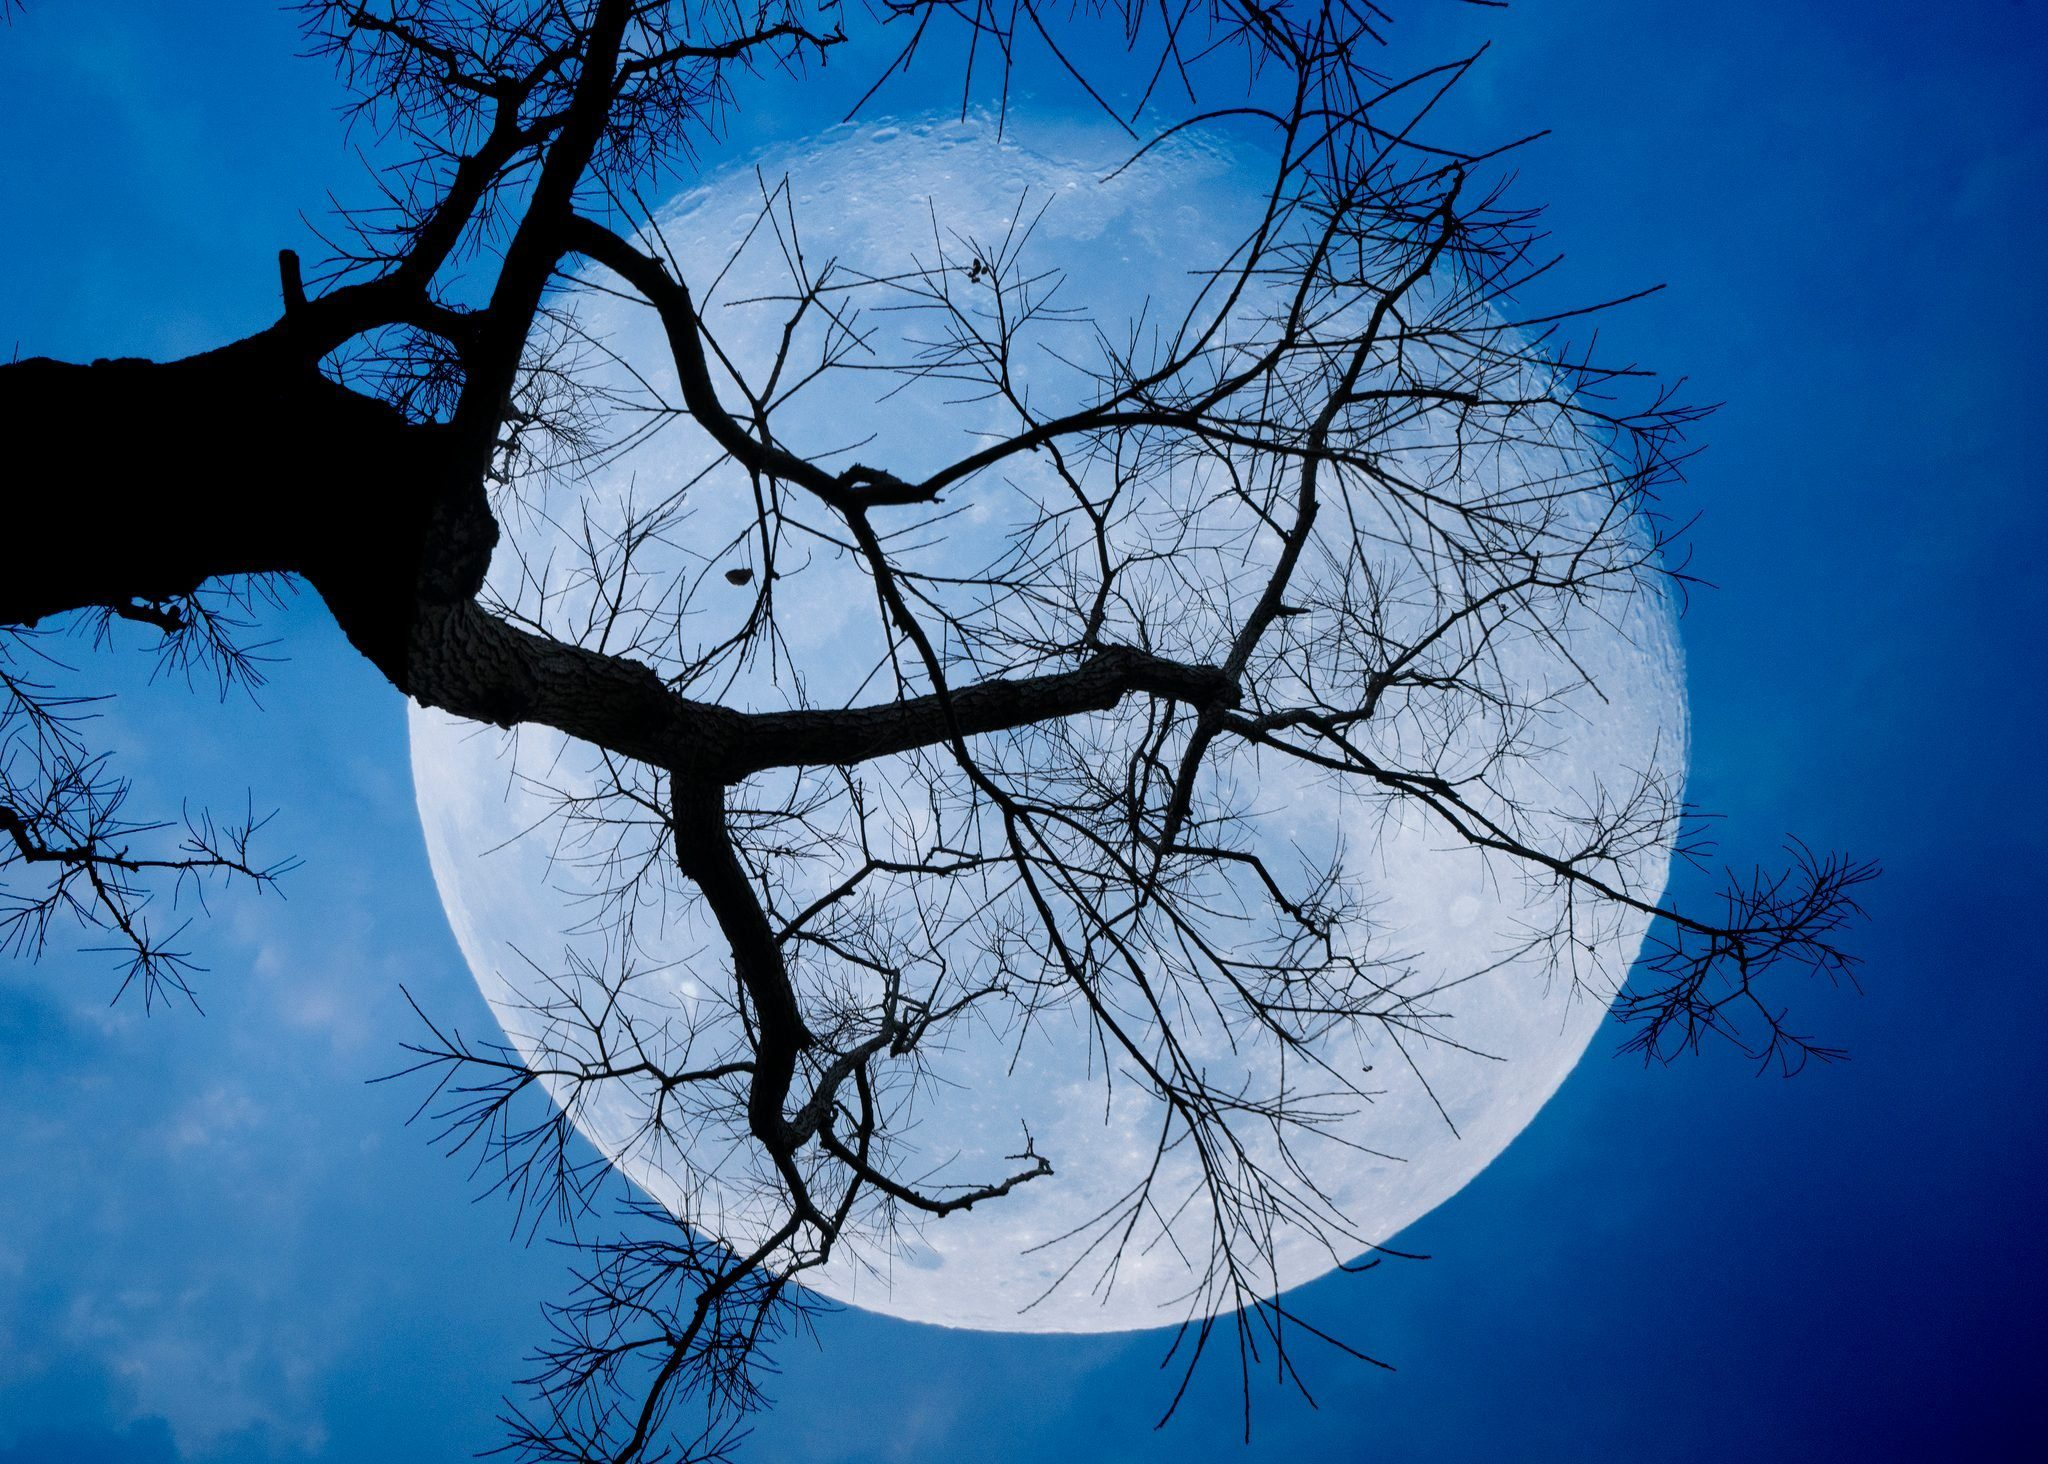 Full moon between branches with blue sky in background